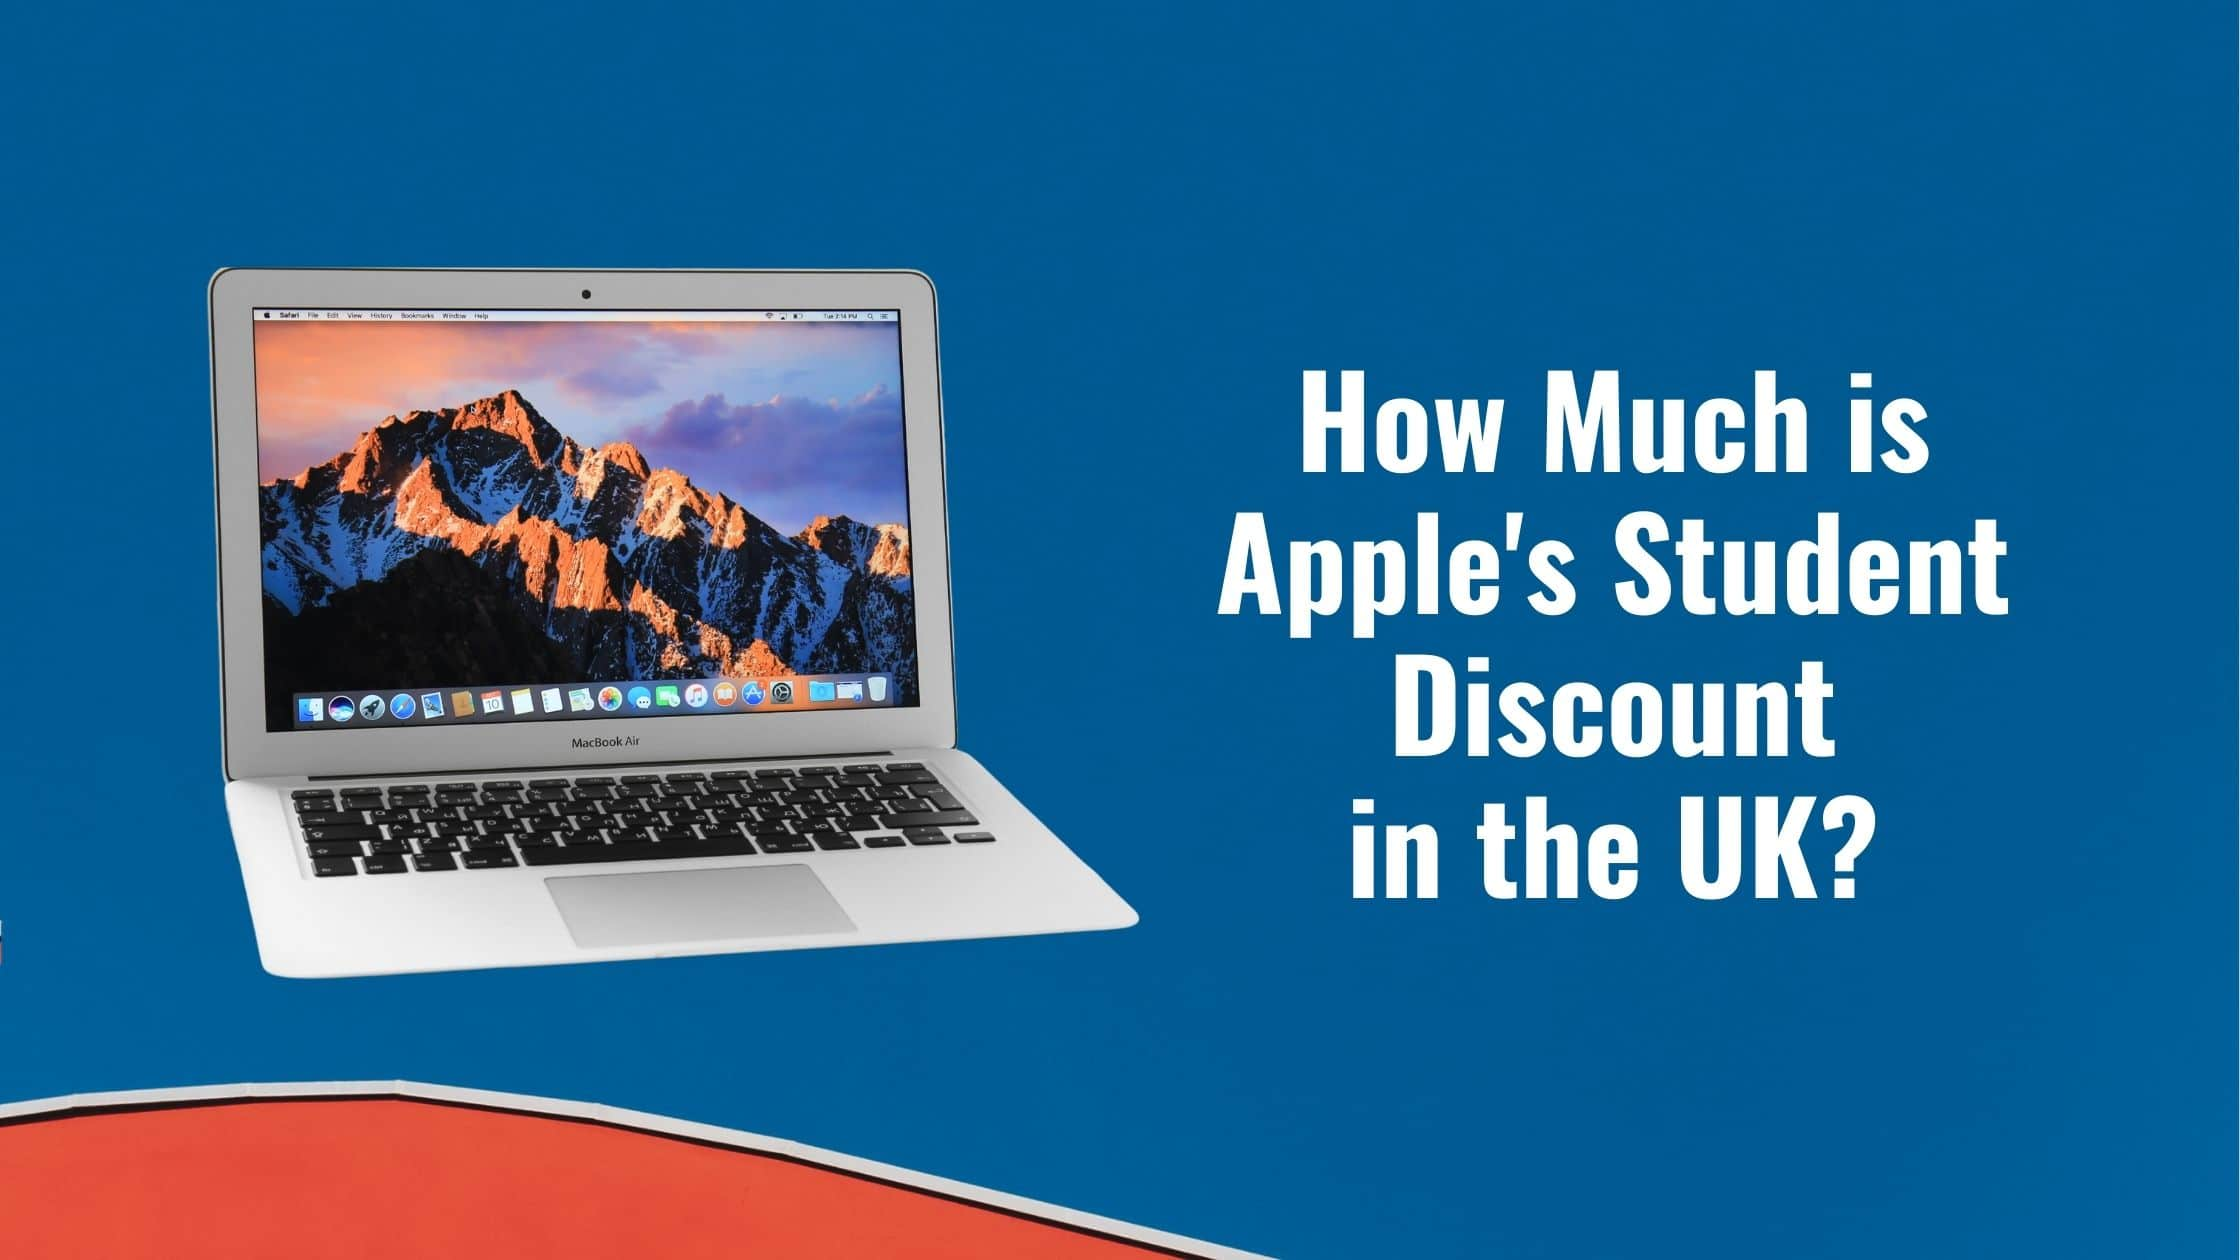 How Much is Apple's Student Discount in the UK?